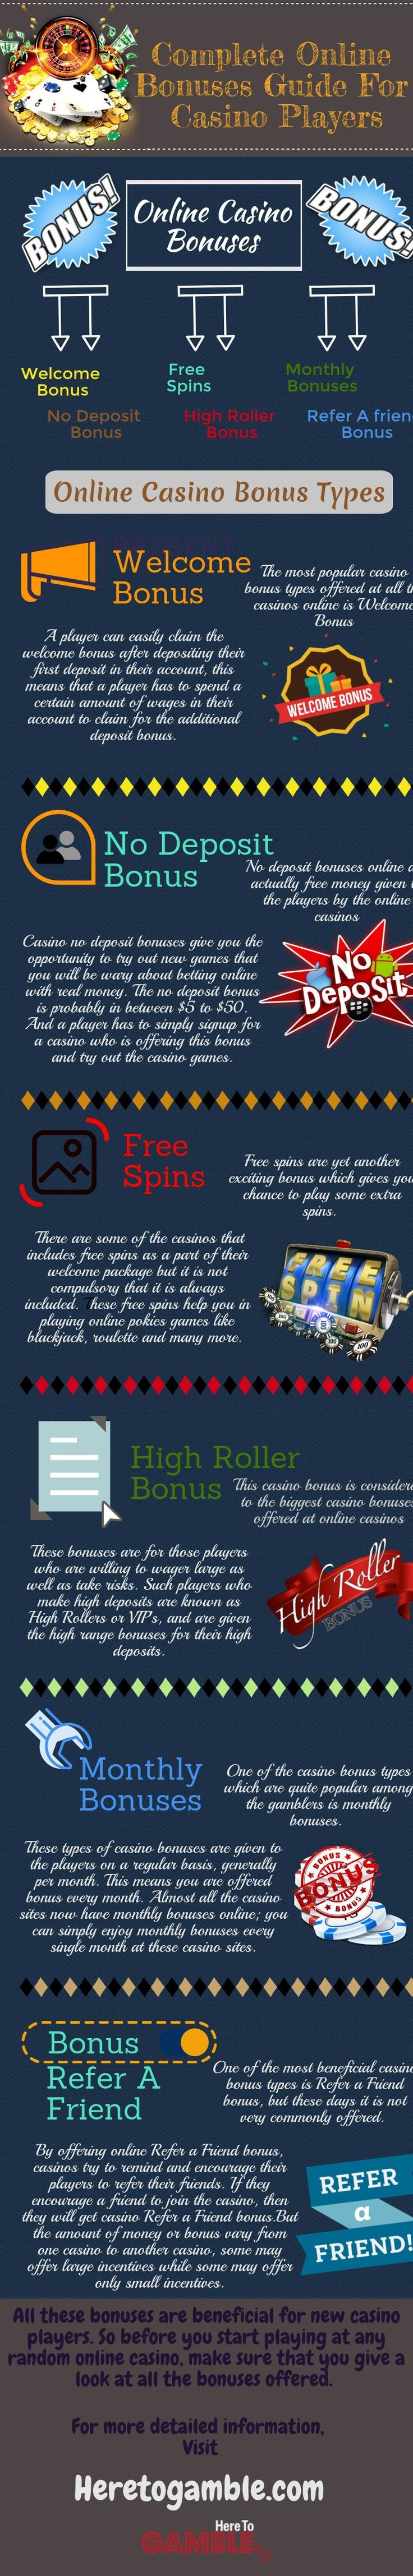 A #Guide to describe different variations of the #casino bonuses and promotions including #welcome #bonuses, no deposit, free #spins and many more. #Infographic